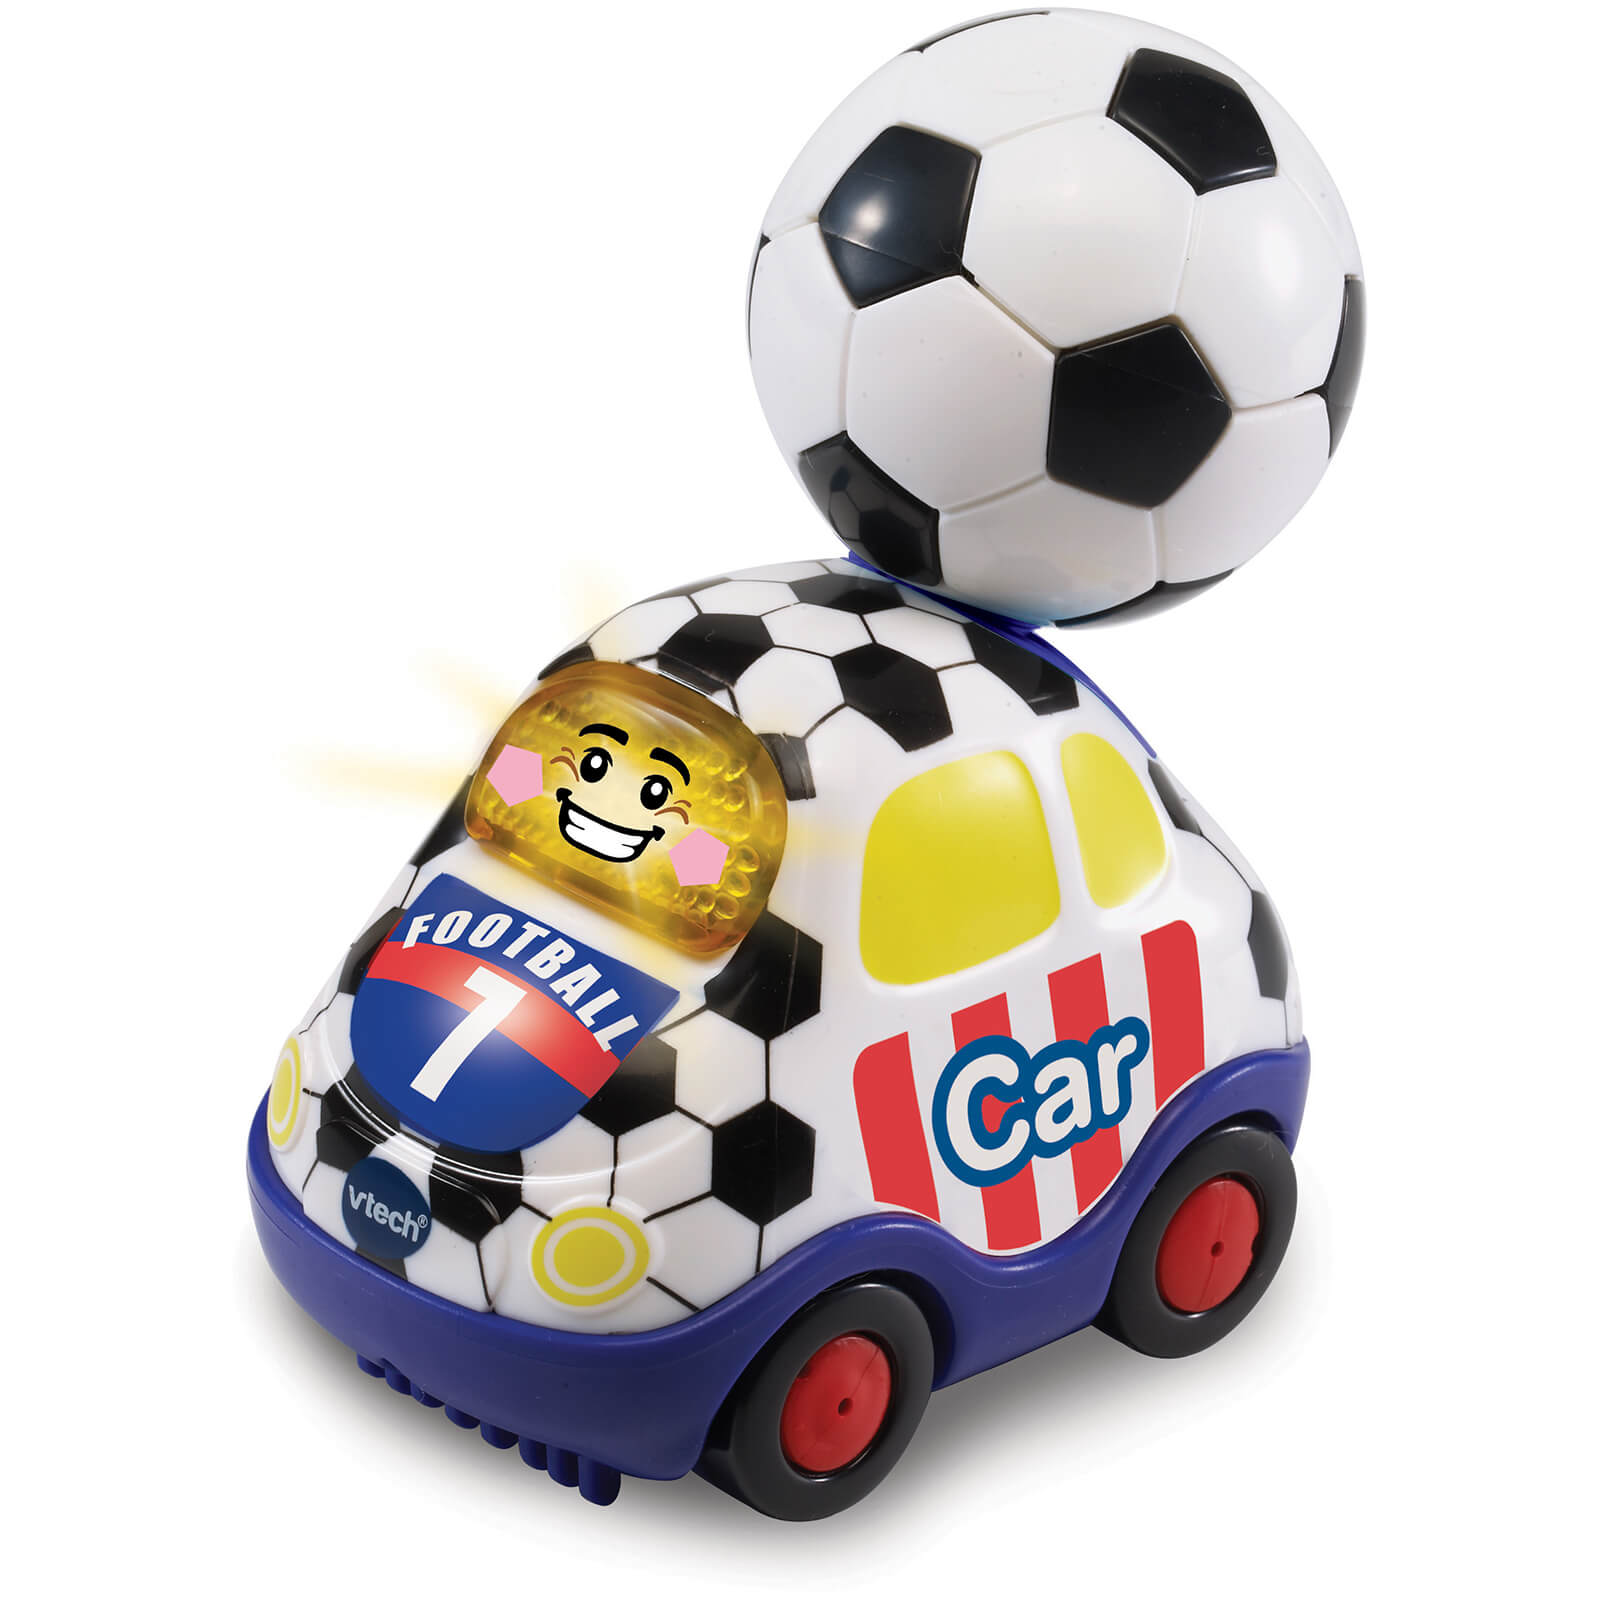 Vtech Toot-Toot Drivers Football Car